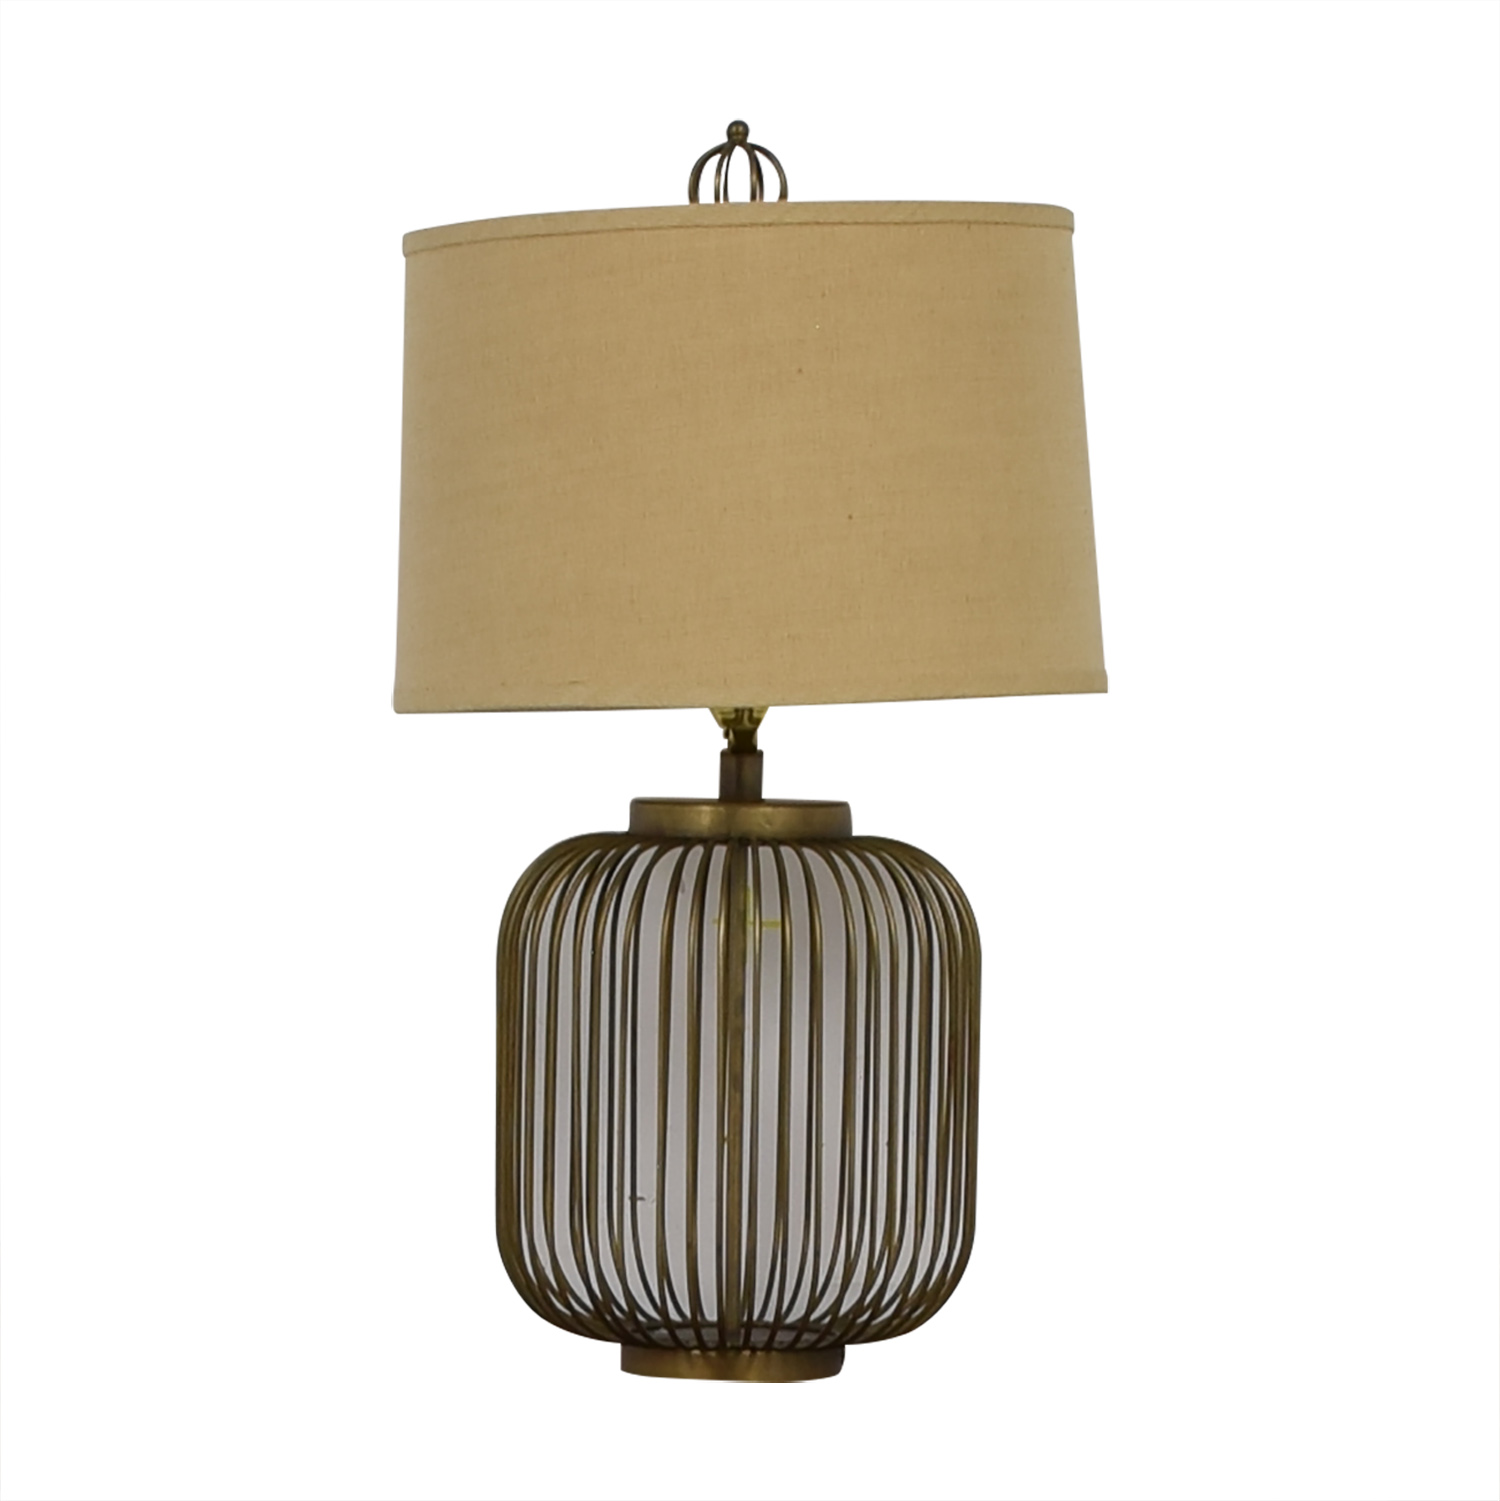 Cage Side Table Lamp used